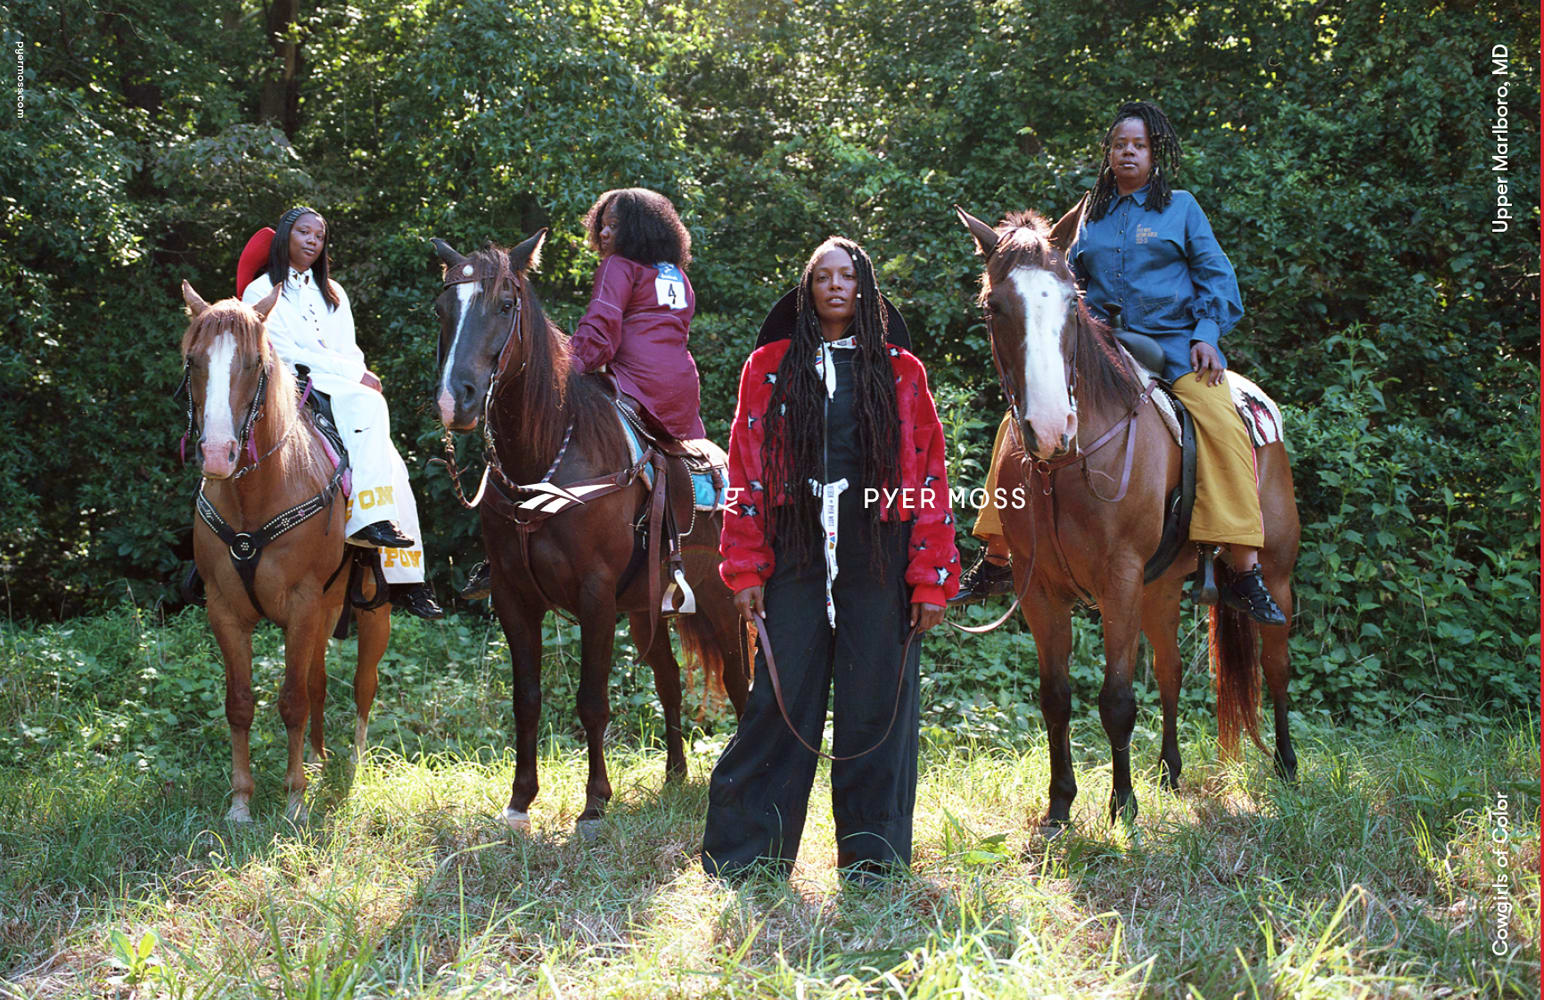 Cowgirls of Color for Pyer Moss Fall 2018. Photo: Rubberband and Kerby Jean-Raymond.